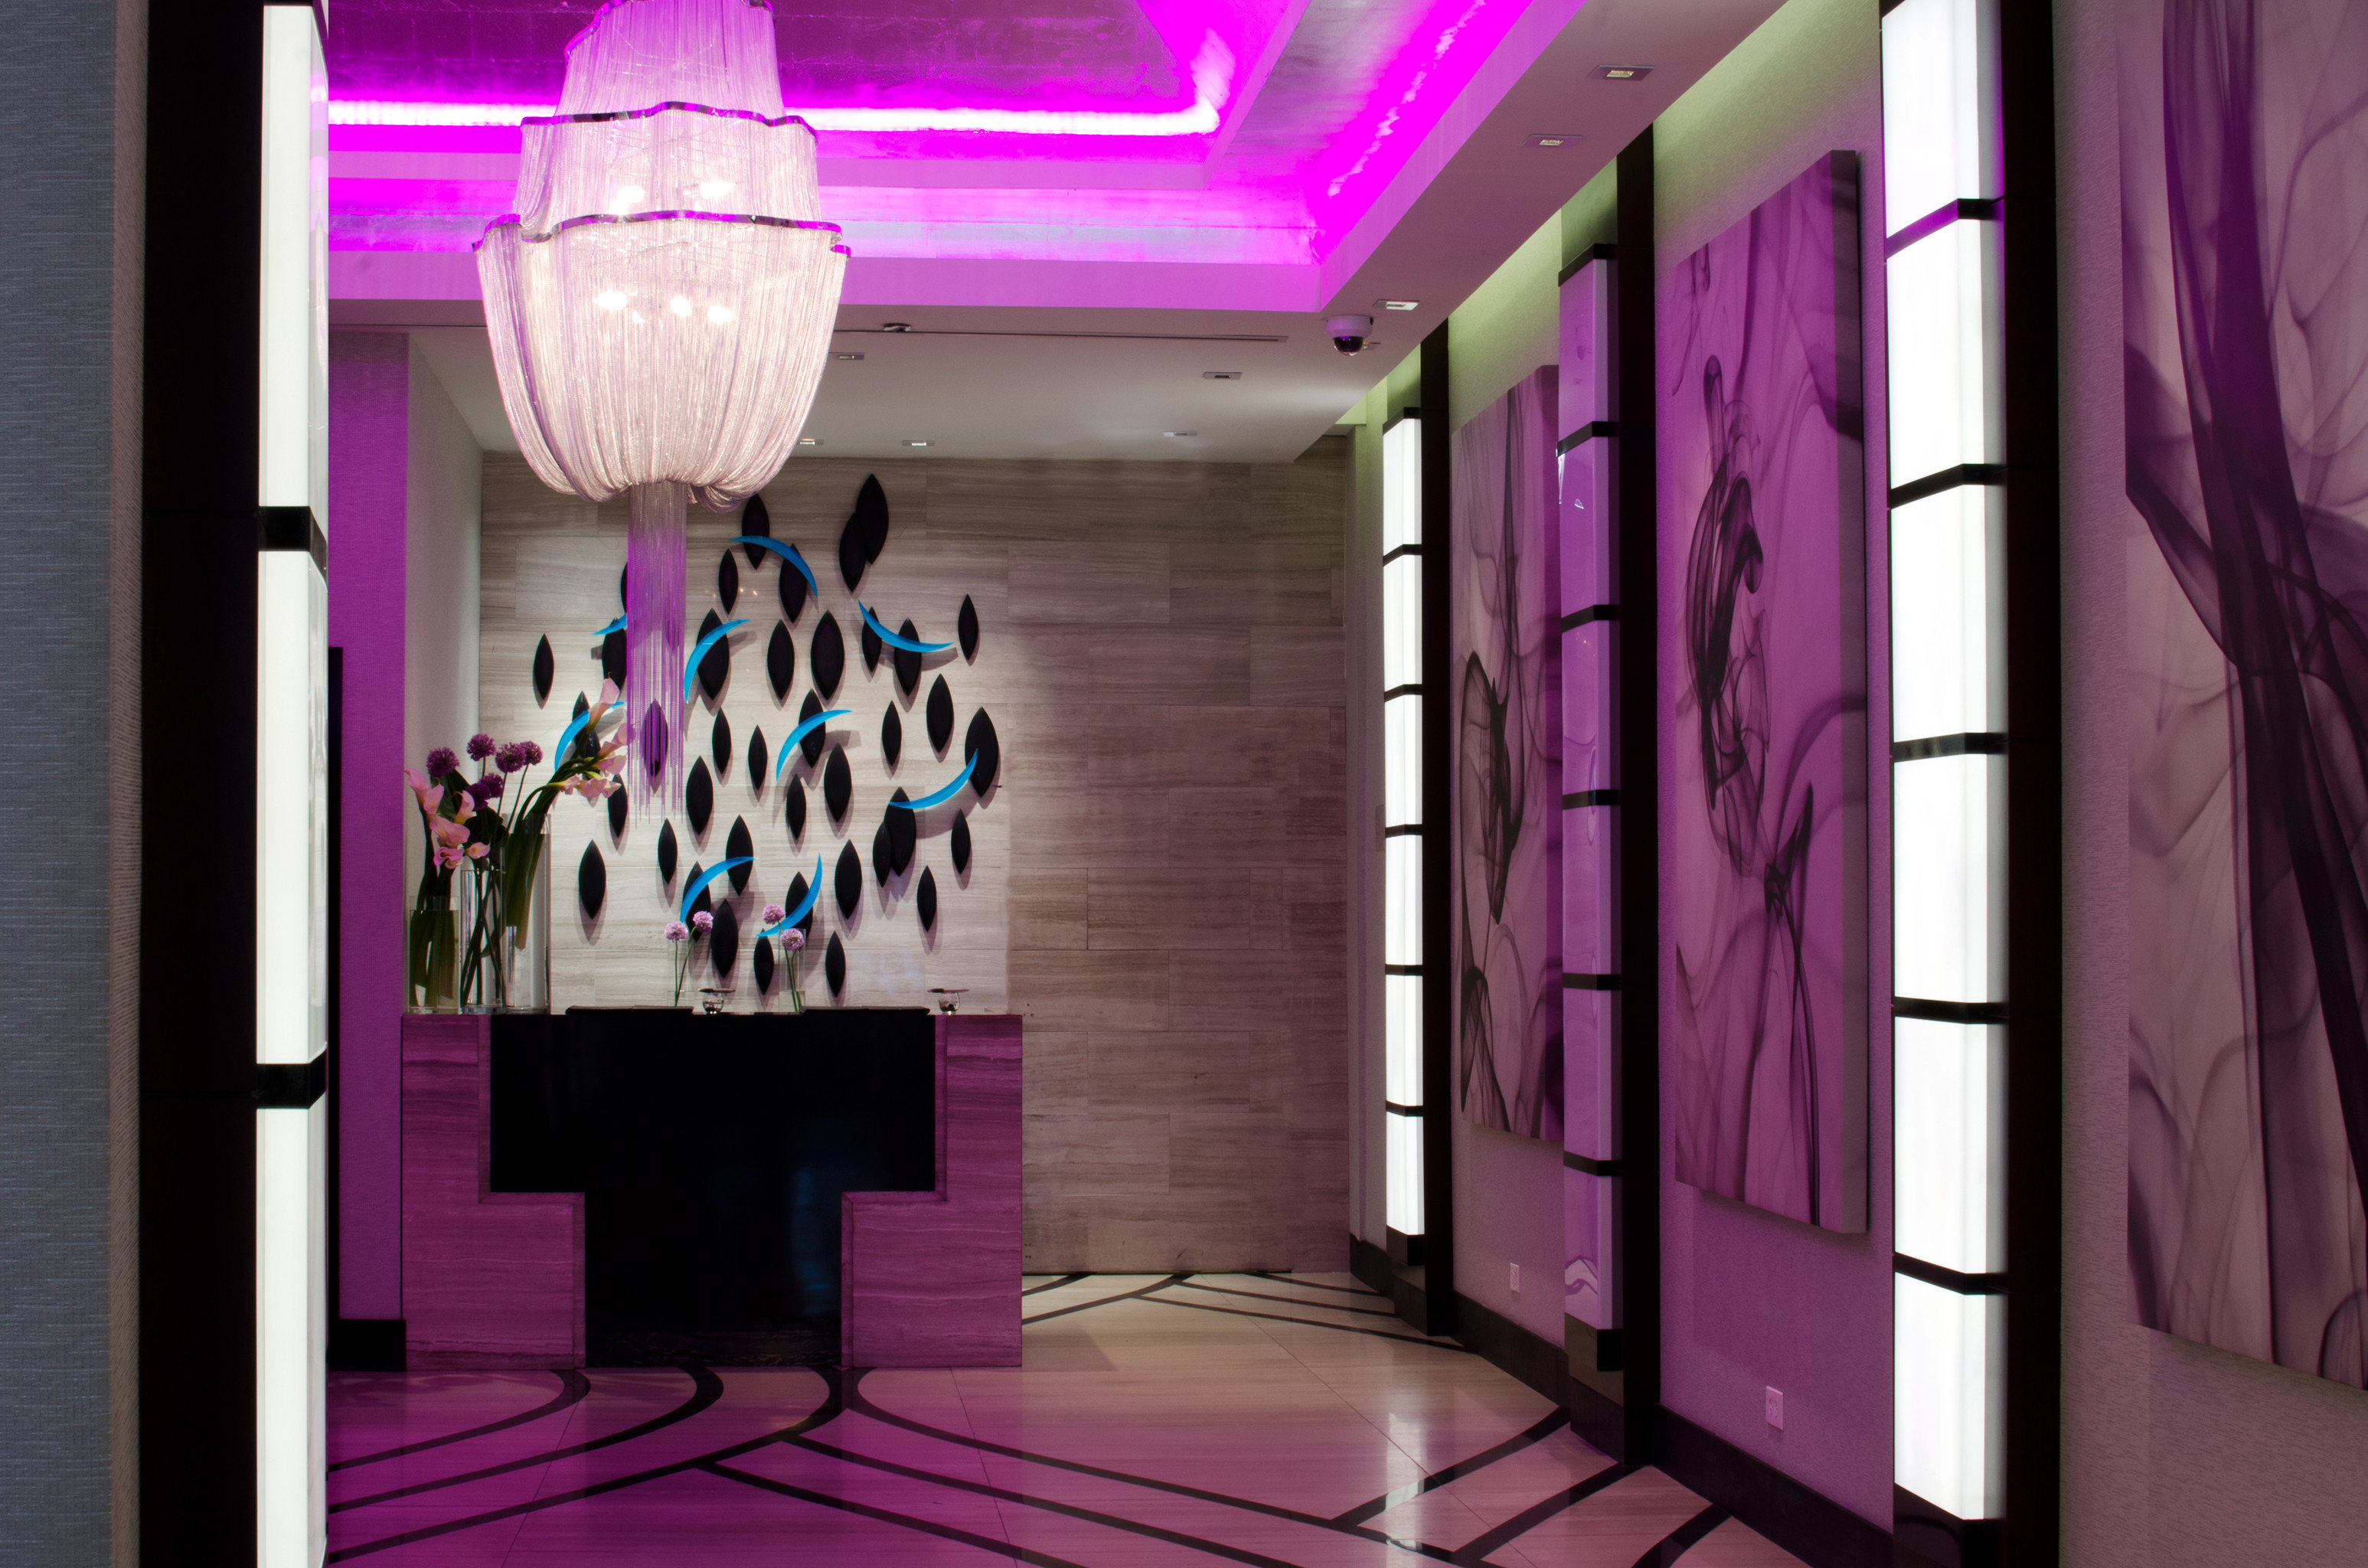 Hip Luxury Modern Travel Trends Trip Ideas color indoor room purple wall interior design Boutique hall display window painted